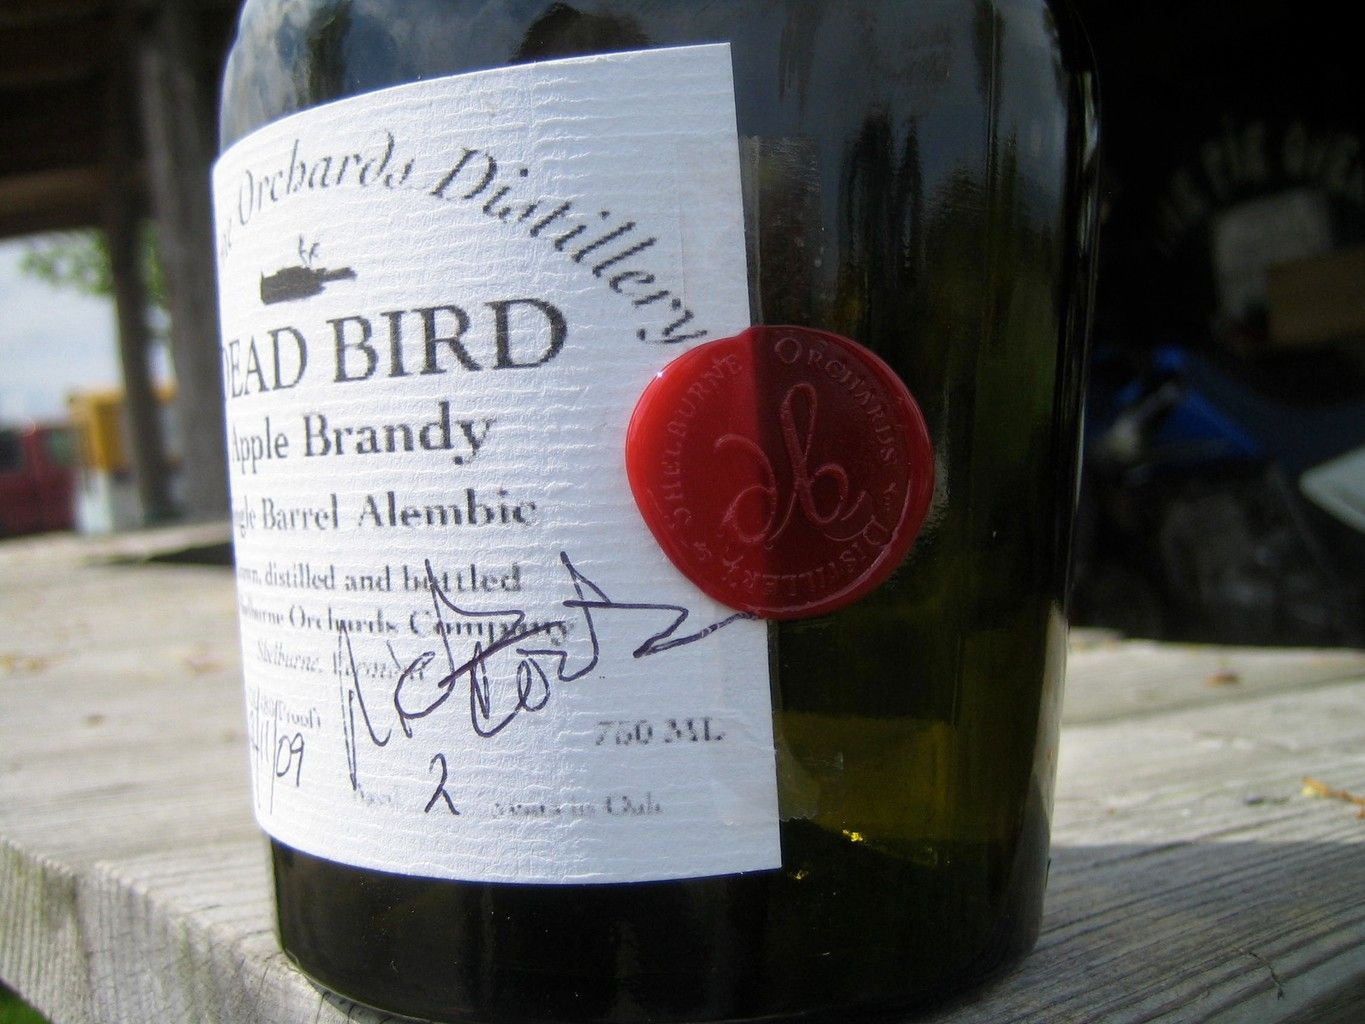 Dead Bird Brandy - Serial No. 2  Apple Brandy, a spirit we distill from hard cider, which we make from our very own apples!.  Shelburne Orchards Distillery uses hoga pot stills